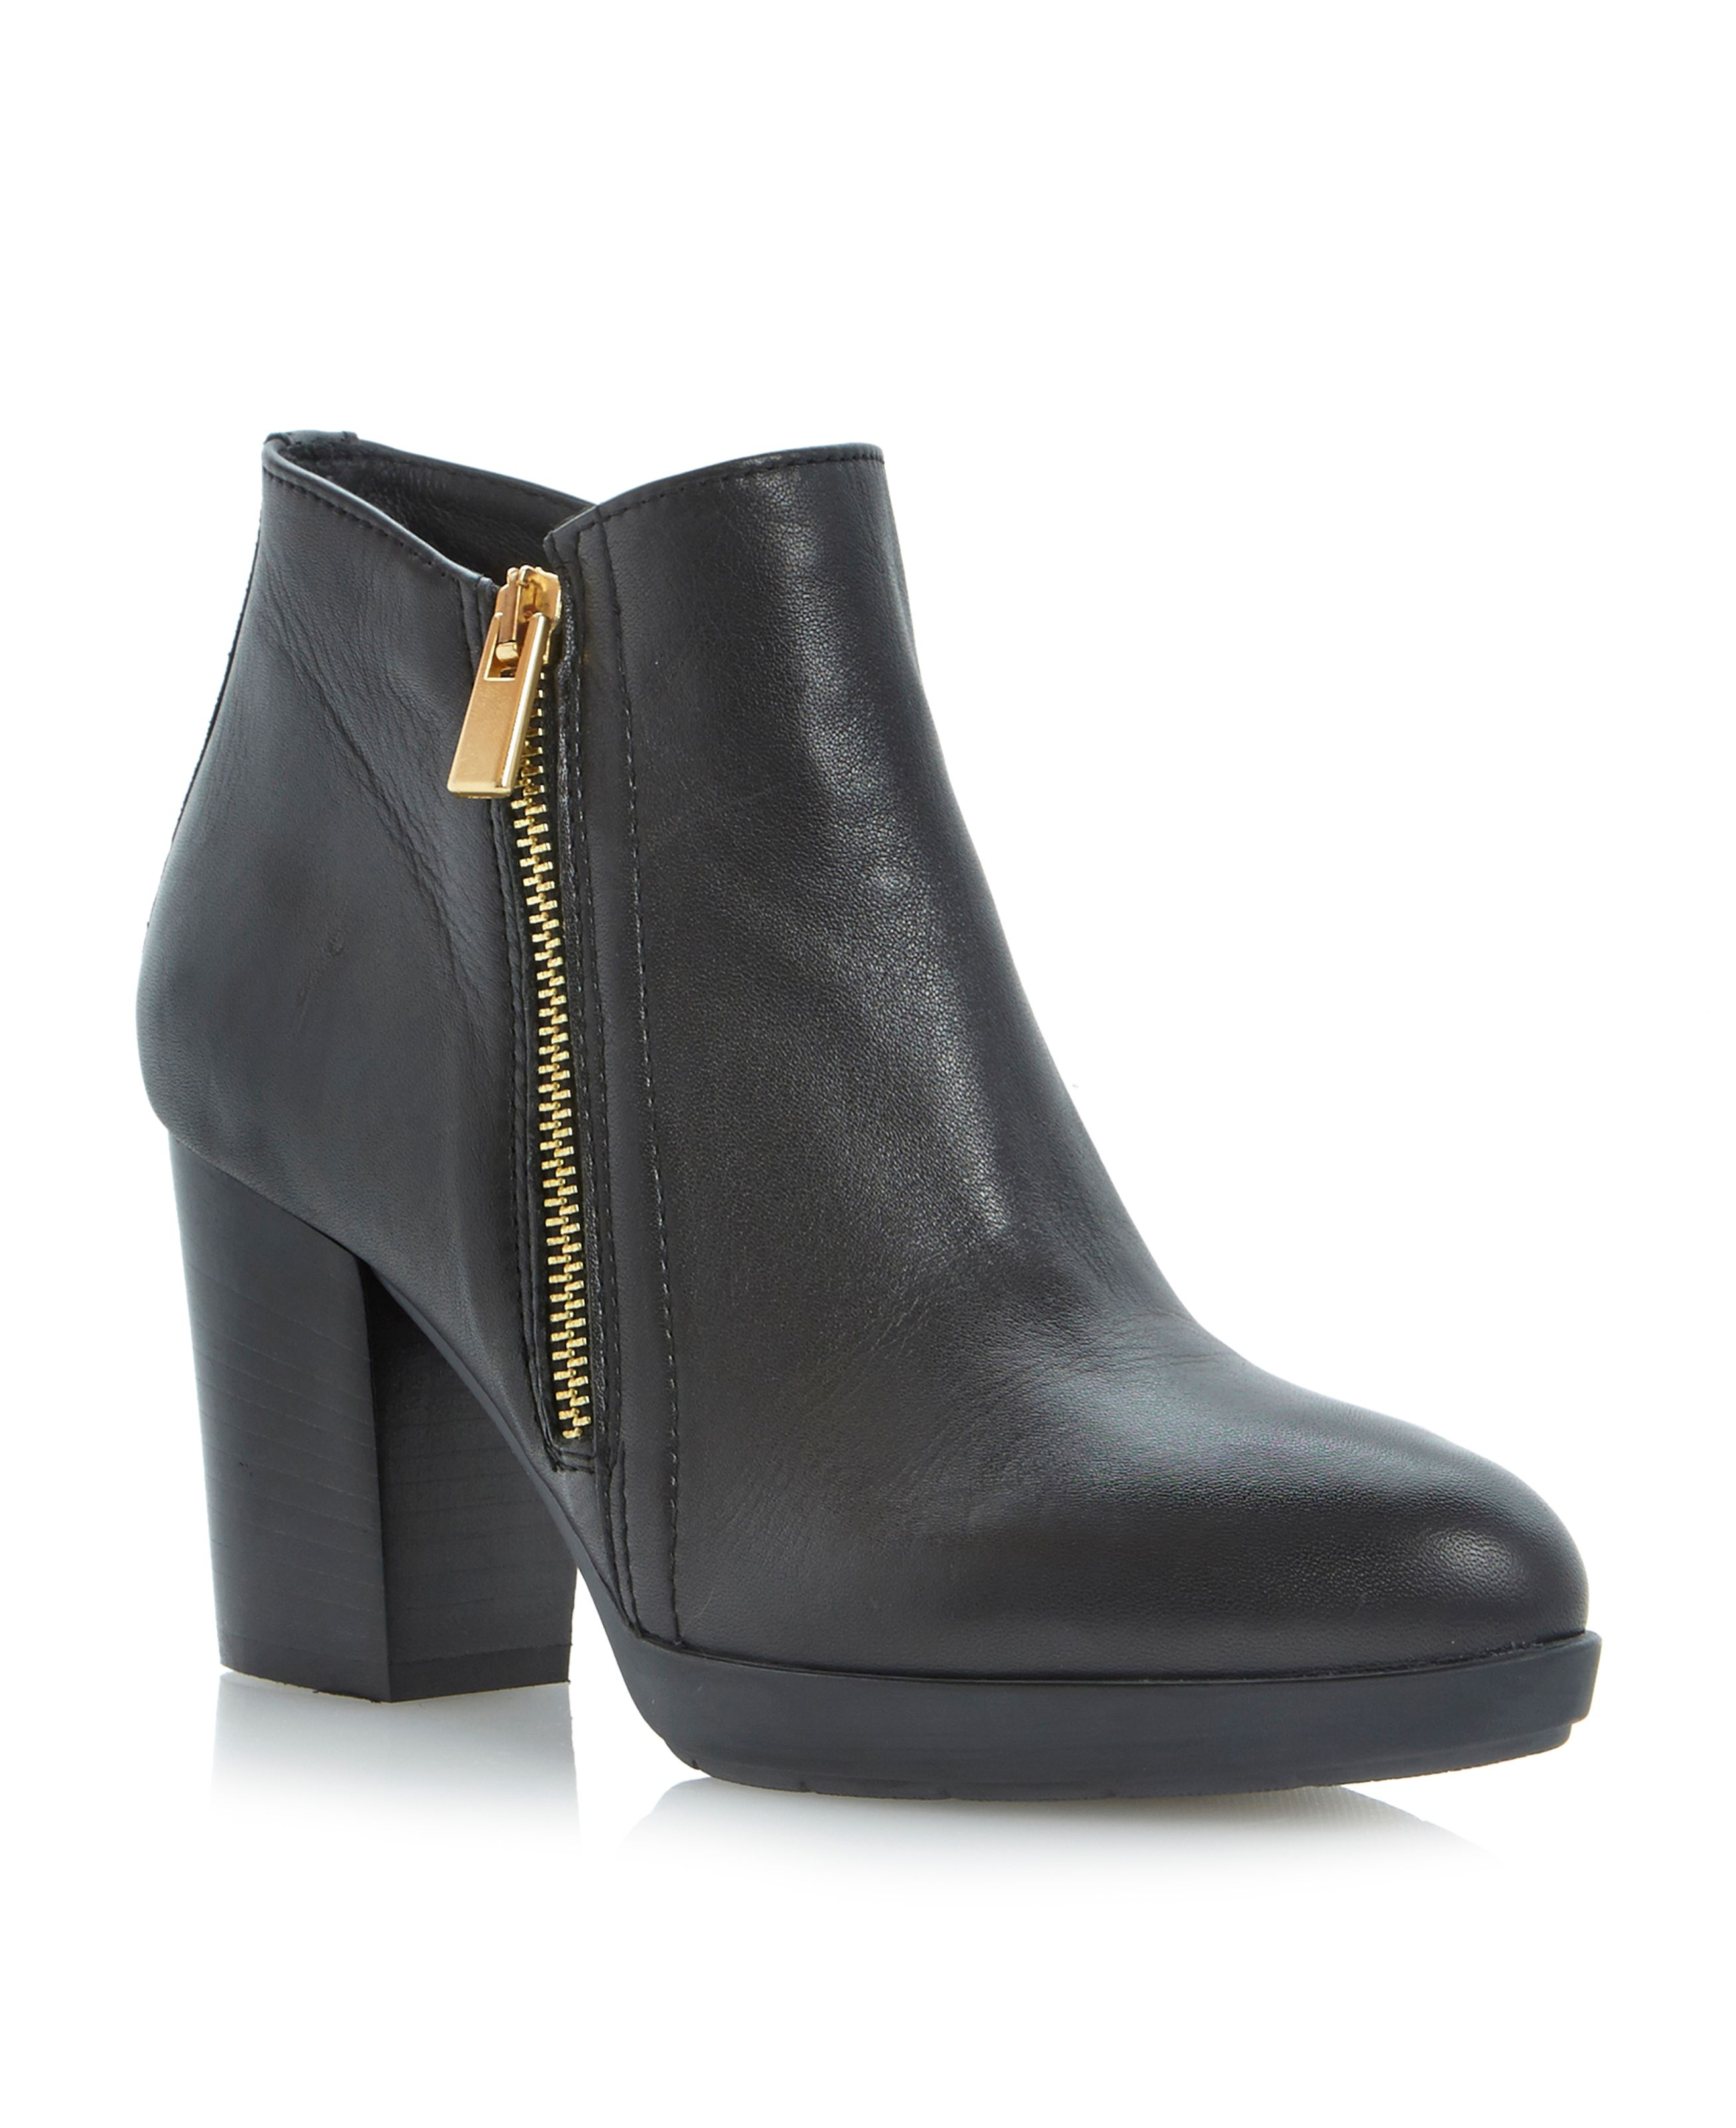 Ponto pointed toe platform ankle boots